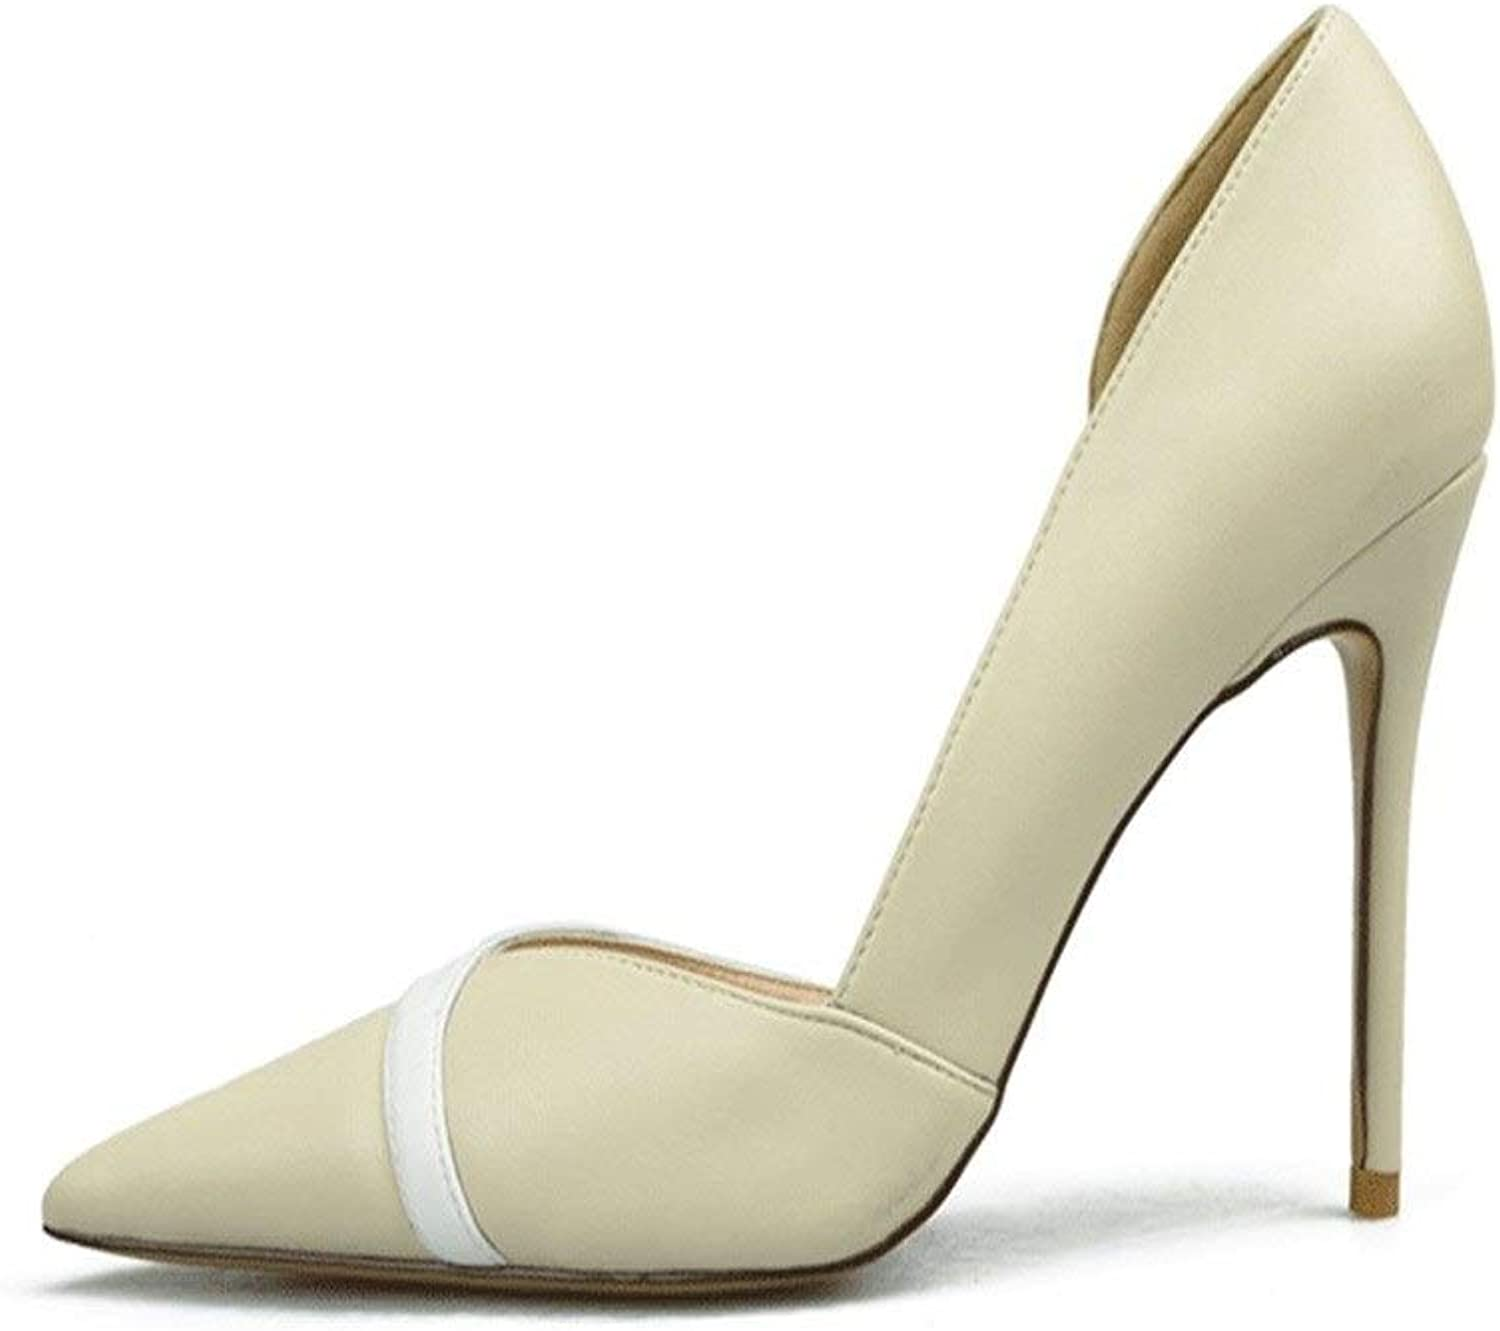 ZerenQ D'Orsay Pumps for Women High Stiletto Heels Two Tones Side Cut Sexy Dress shoes for Ladies Durable (color   Nude 8 cm Heel, Size   6.5 M US)